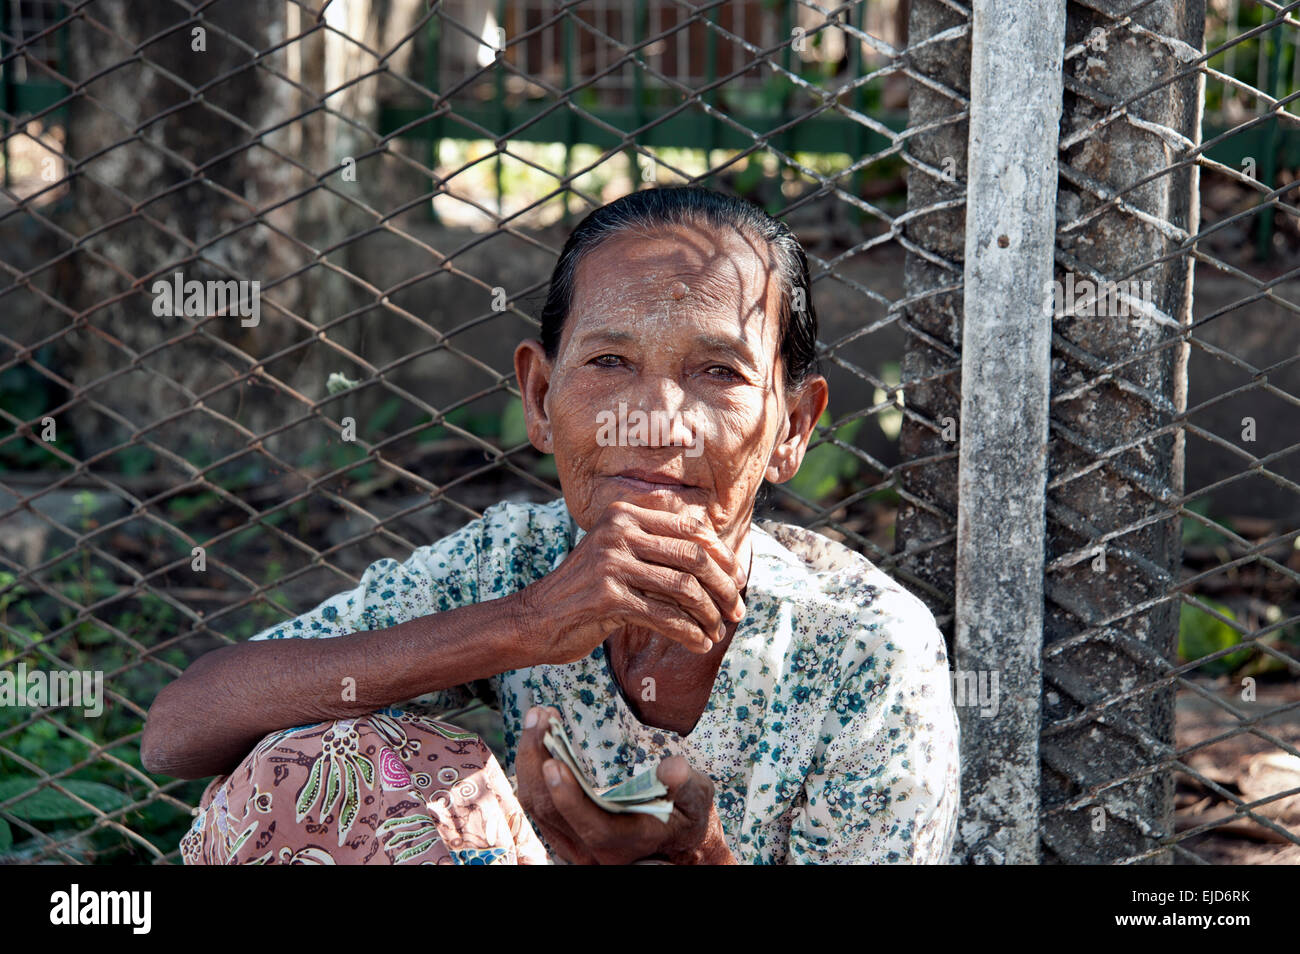 An old Burmese lady begging sitting on the pavement against a wire ...